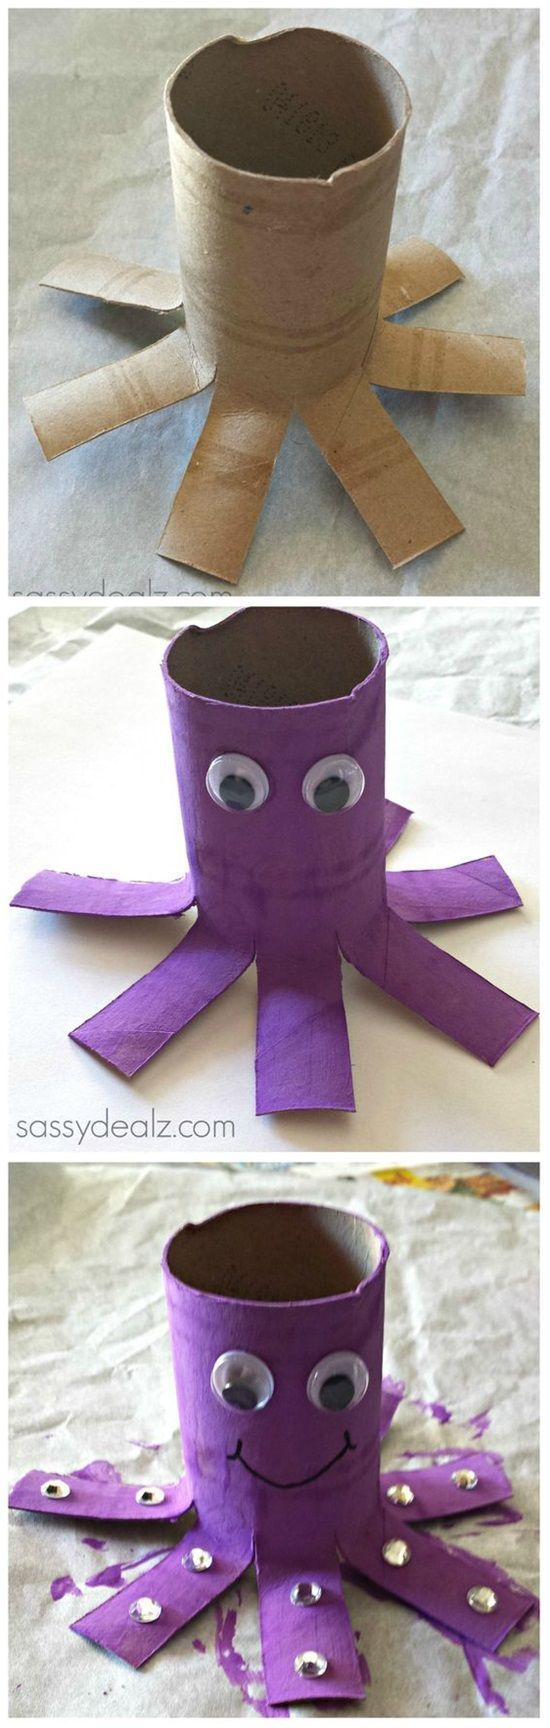 We love toilet paper rolls, they are plentiful and you will feel good about recycling them instead of just throwing them into the trash. Add to that, with toilet paper rolls you can create amazing crafts that your kids will truly enjoy and play with. Here is our compilation with some of the best projects you can make with toilet paper rolls, and your kids can help you too. #artsandcraftsforkidswithpaper,